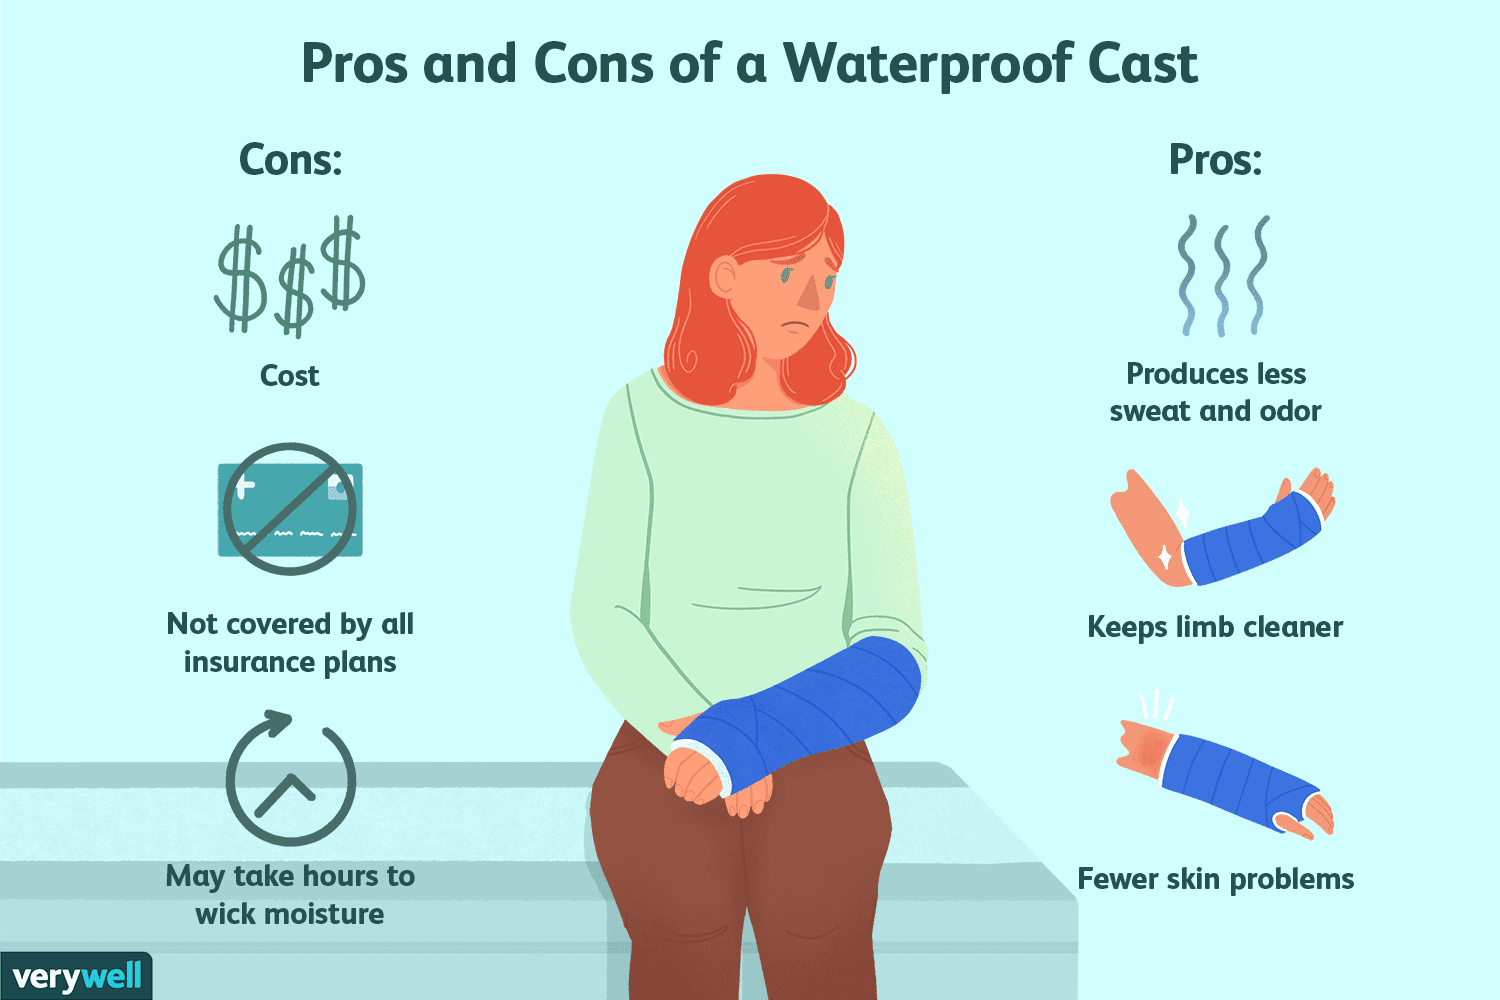 Waterproof Casts for Swimming or Showering